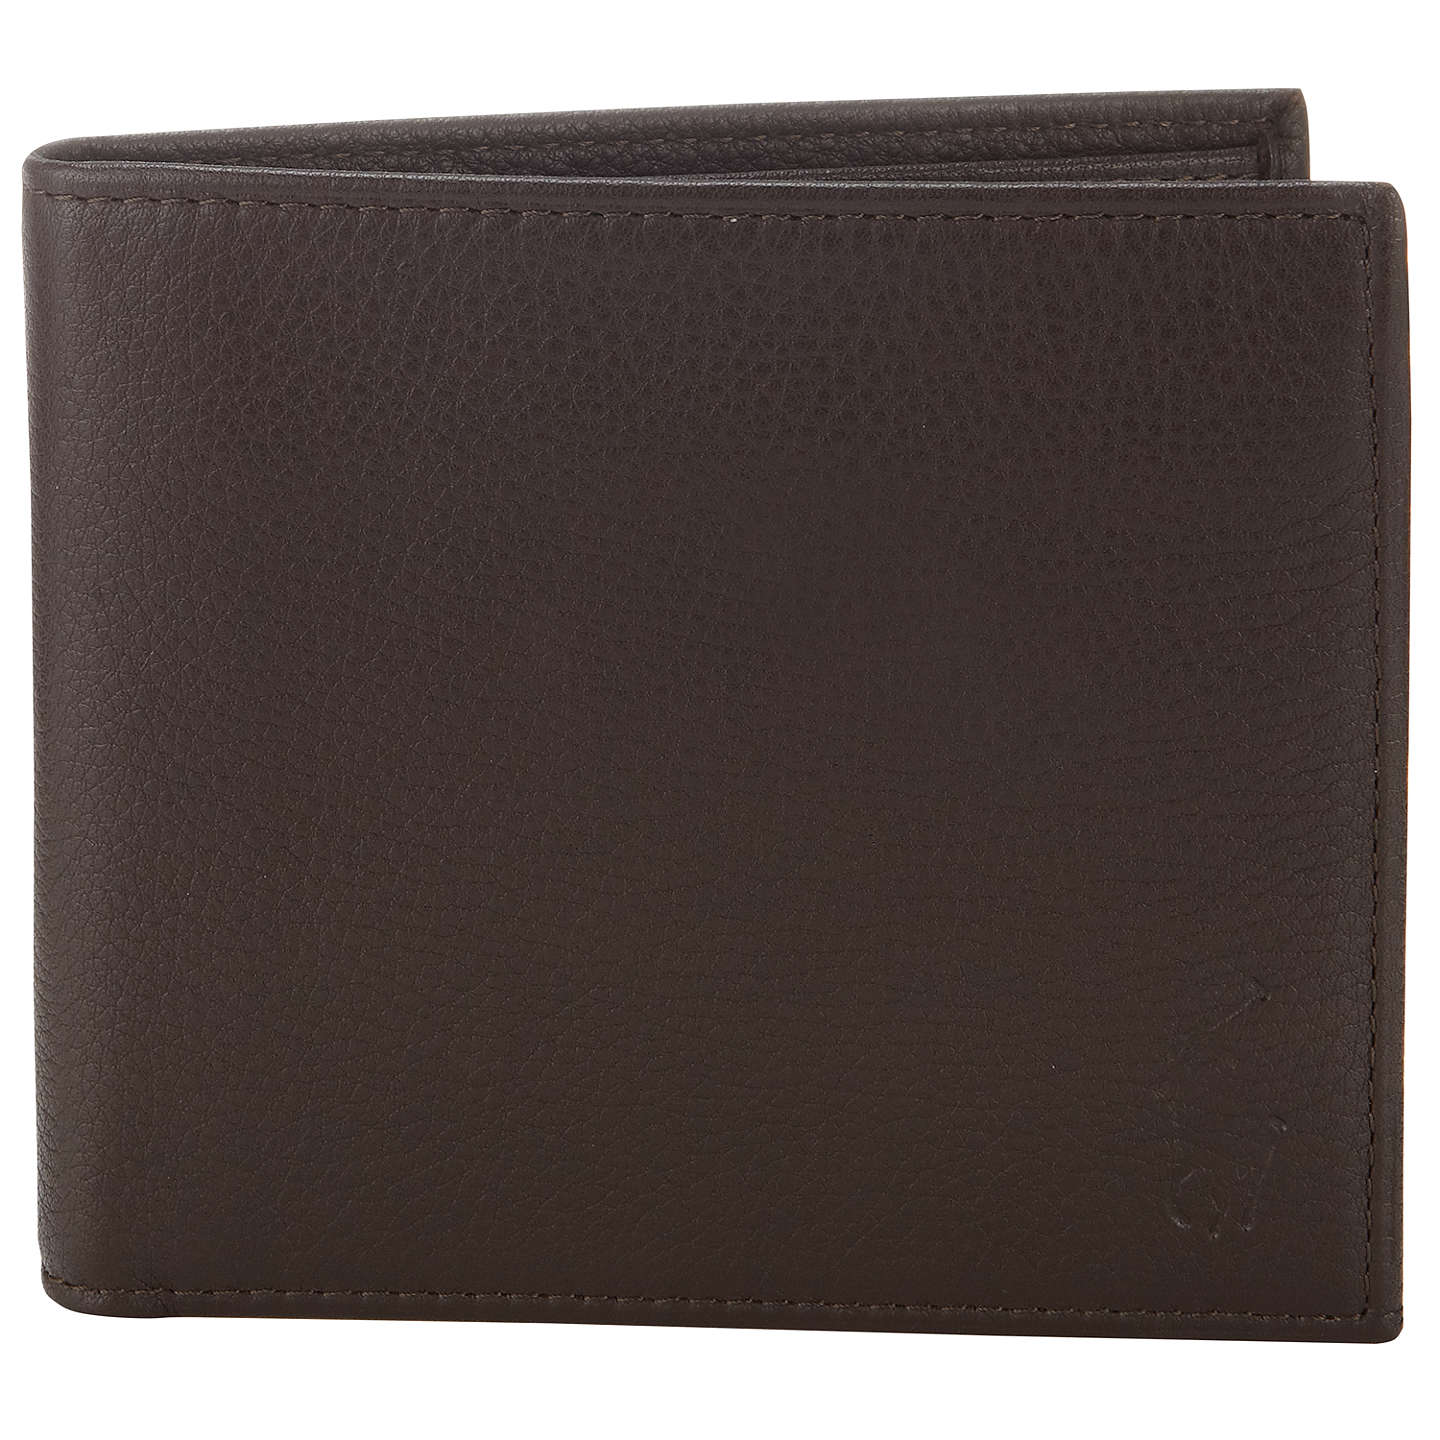 BuyPolo Ralph Lauren Pebble Grain Leather Wallet, Brown Online at  johnlewis.com ...